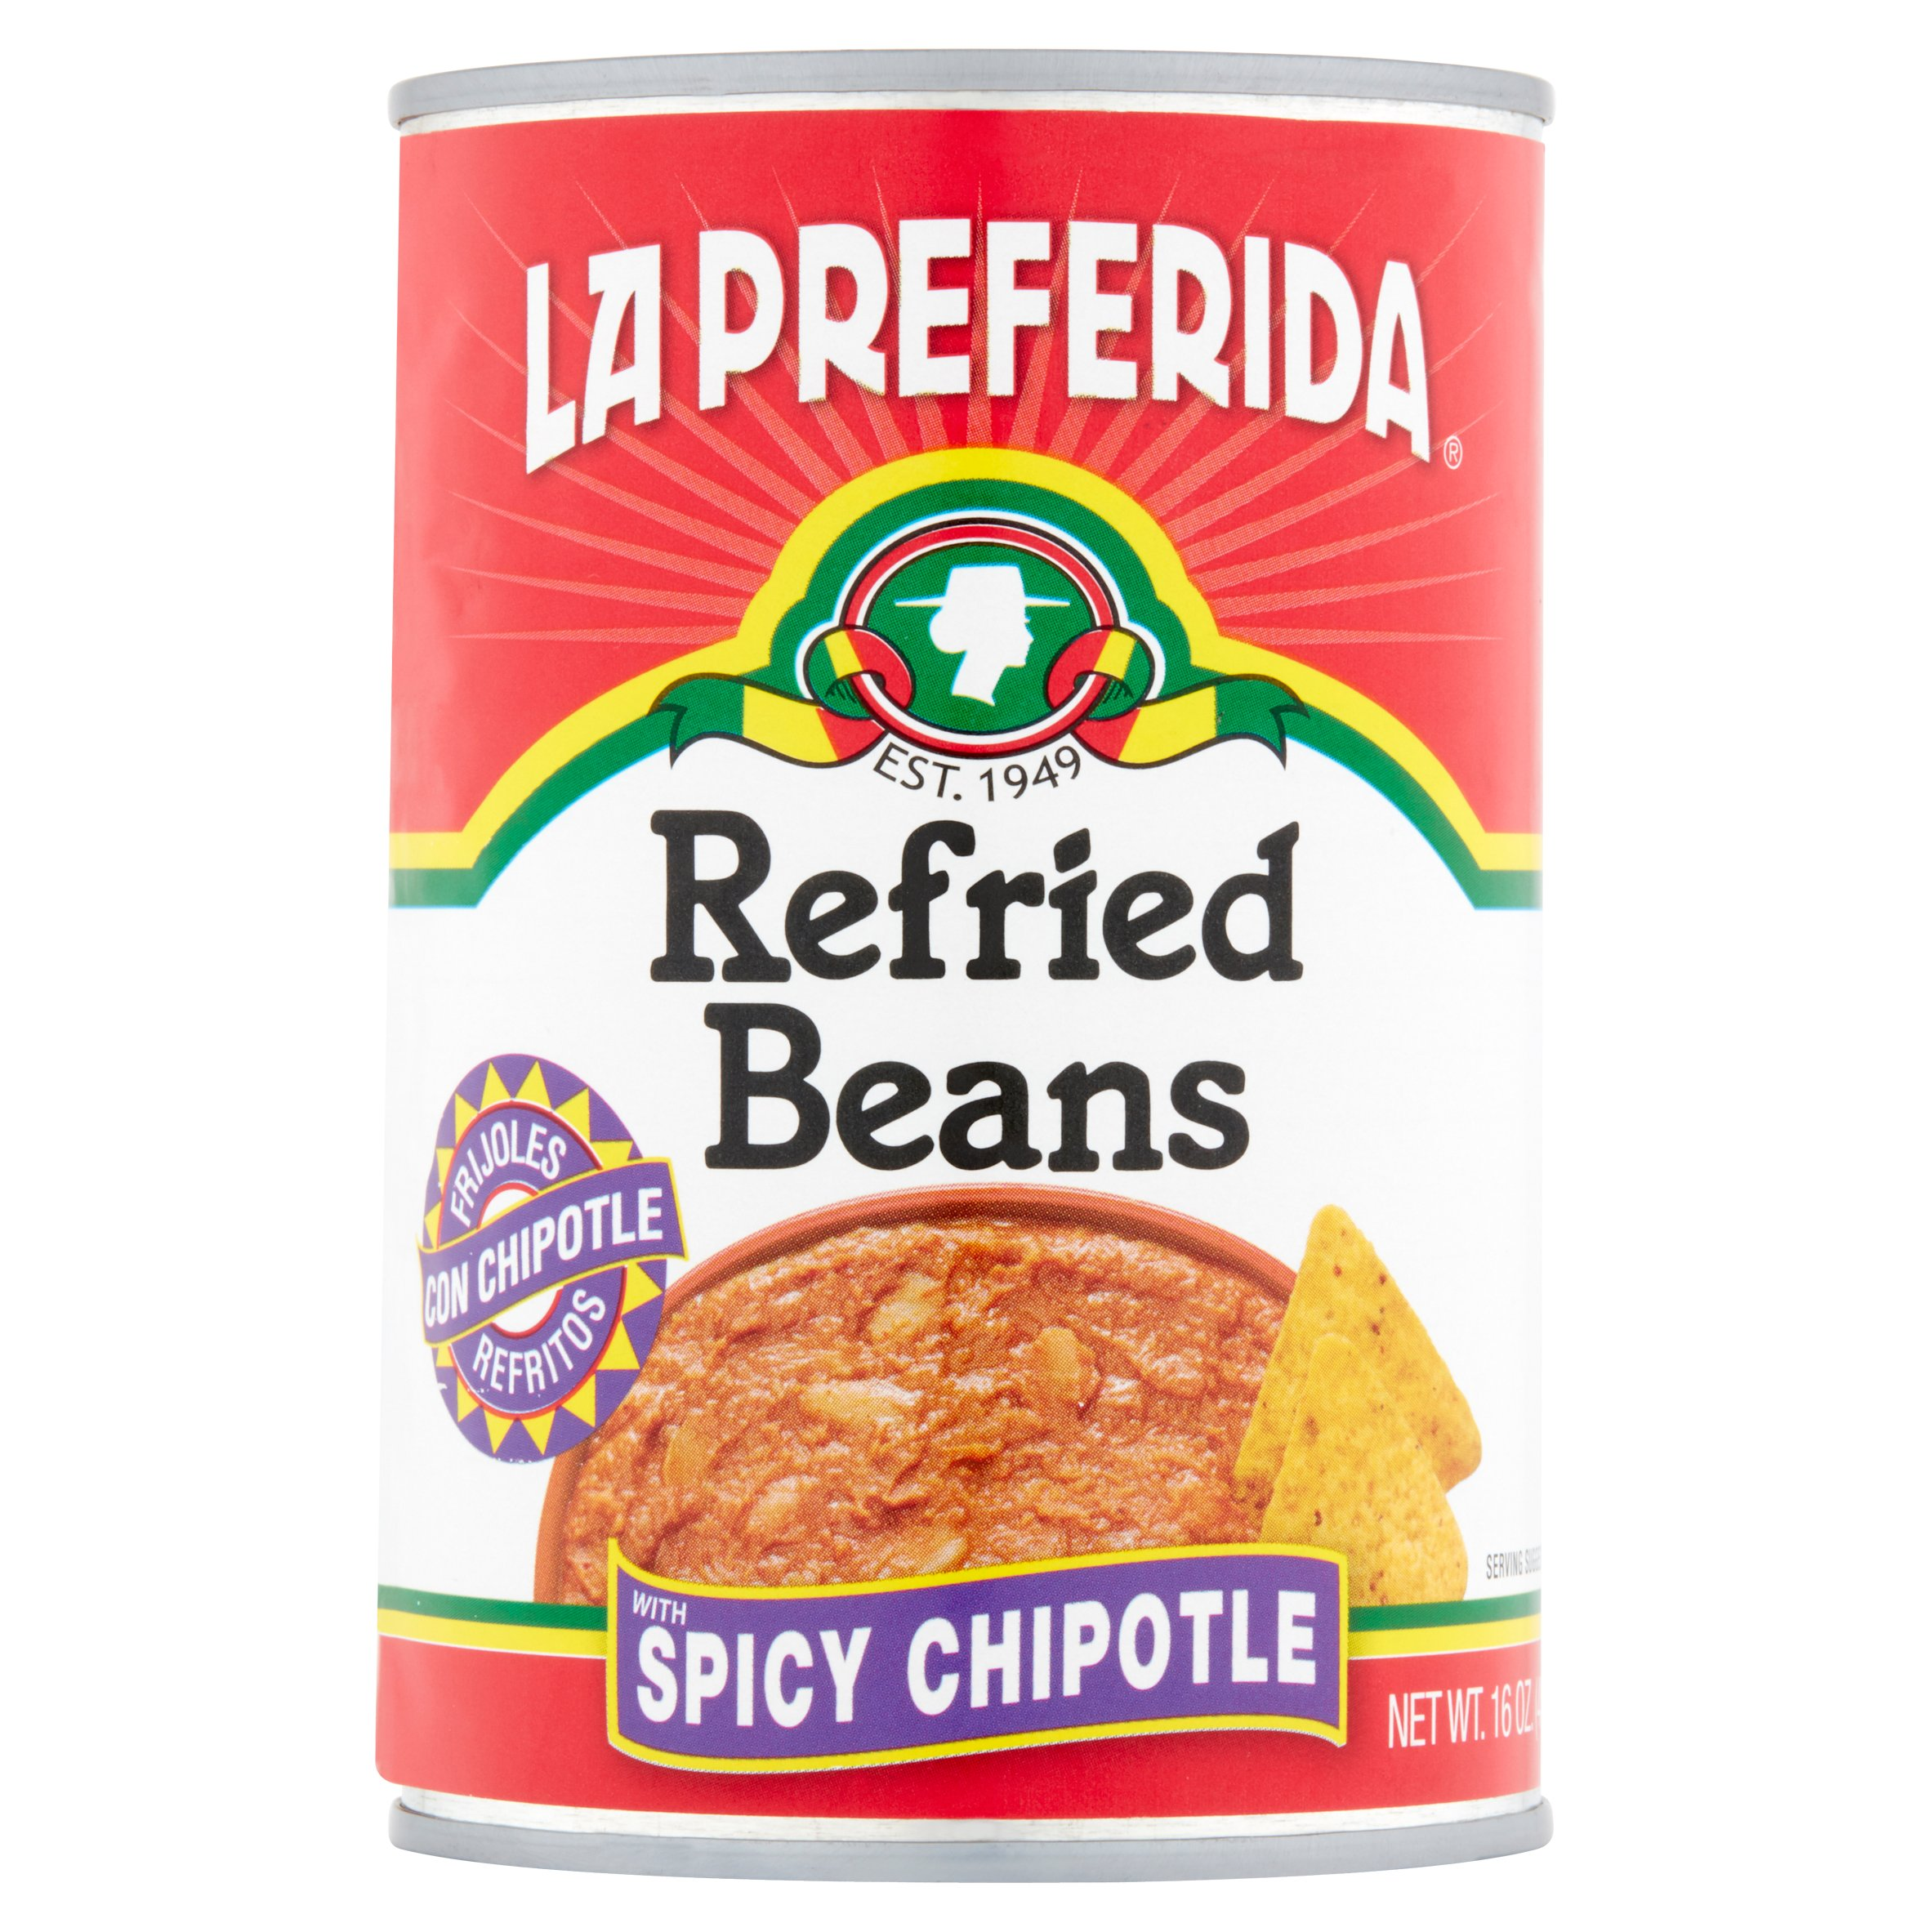 La Preferida Refried Beans with Spicy Chipotle, 16 oz